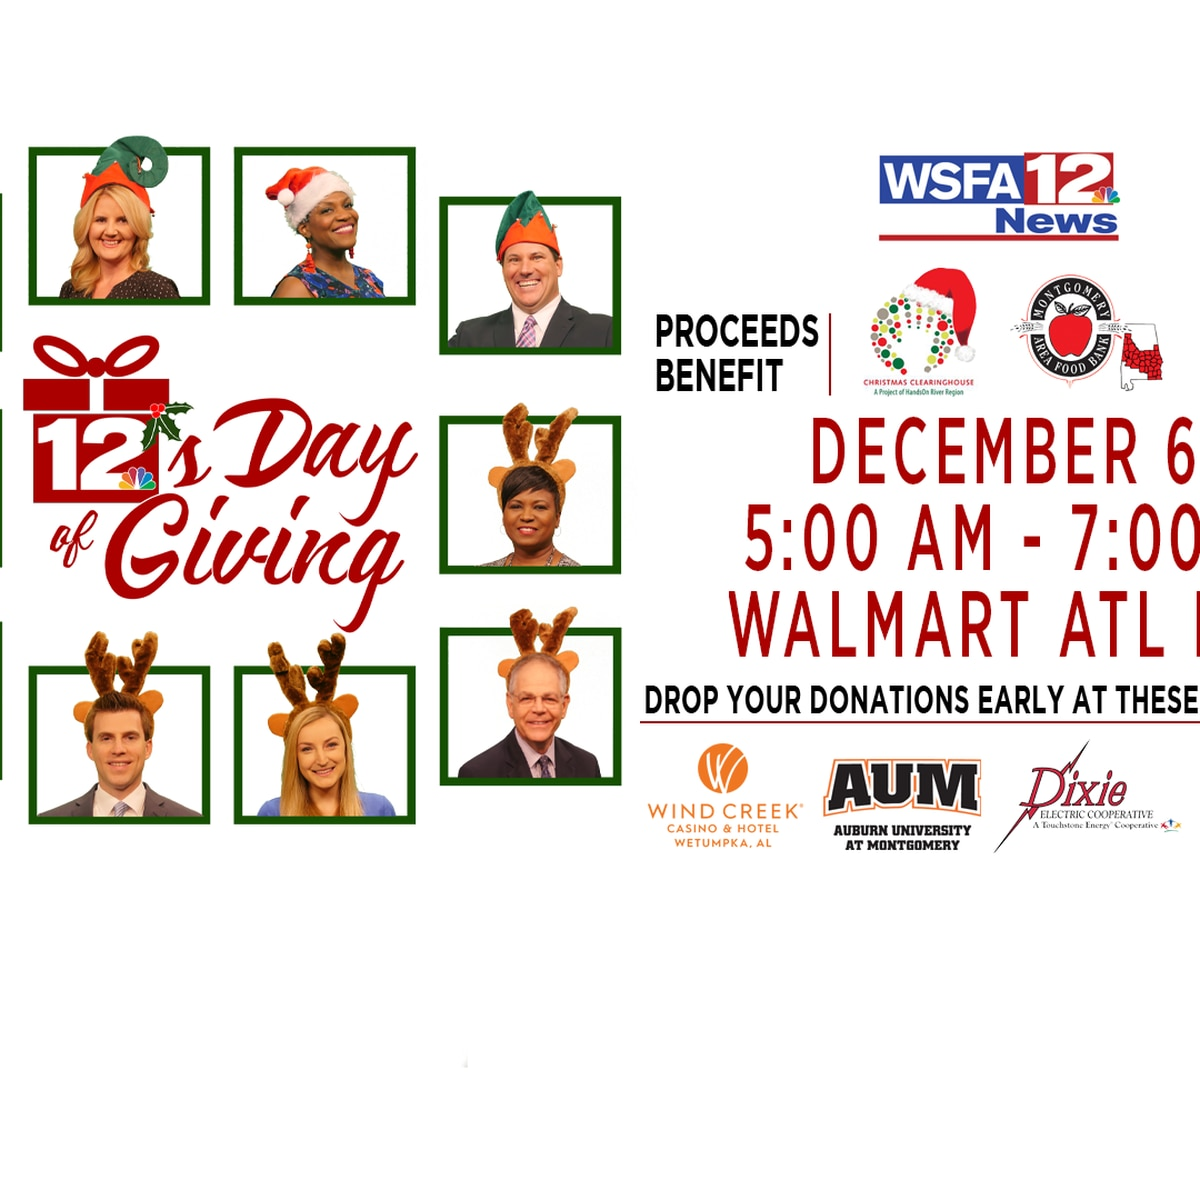 12's Day of Giving coming up Friday, Dec. 6